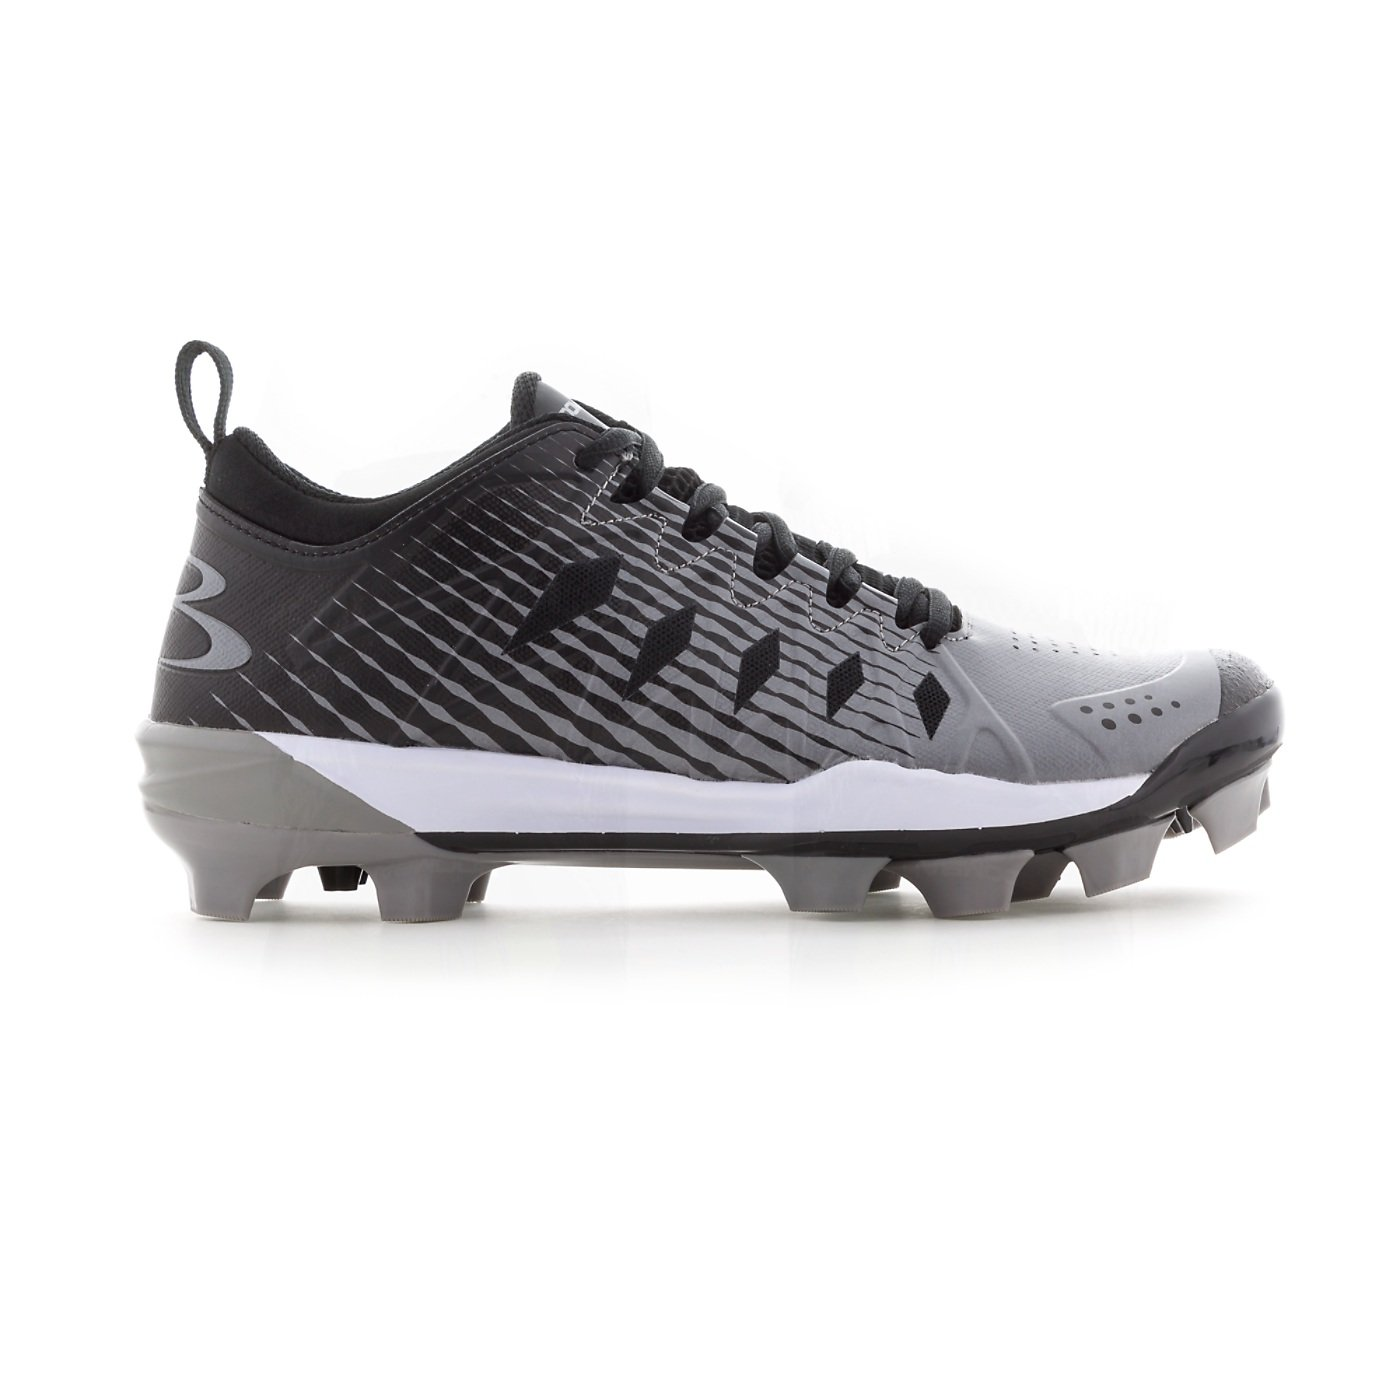 fd1fa688d6b Amazon.com  Boombah Women s Squadron Molded Cleats - 12 Color Options -  Multiple Sizes  Sports   Outdoors